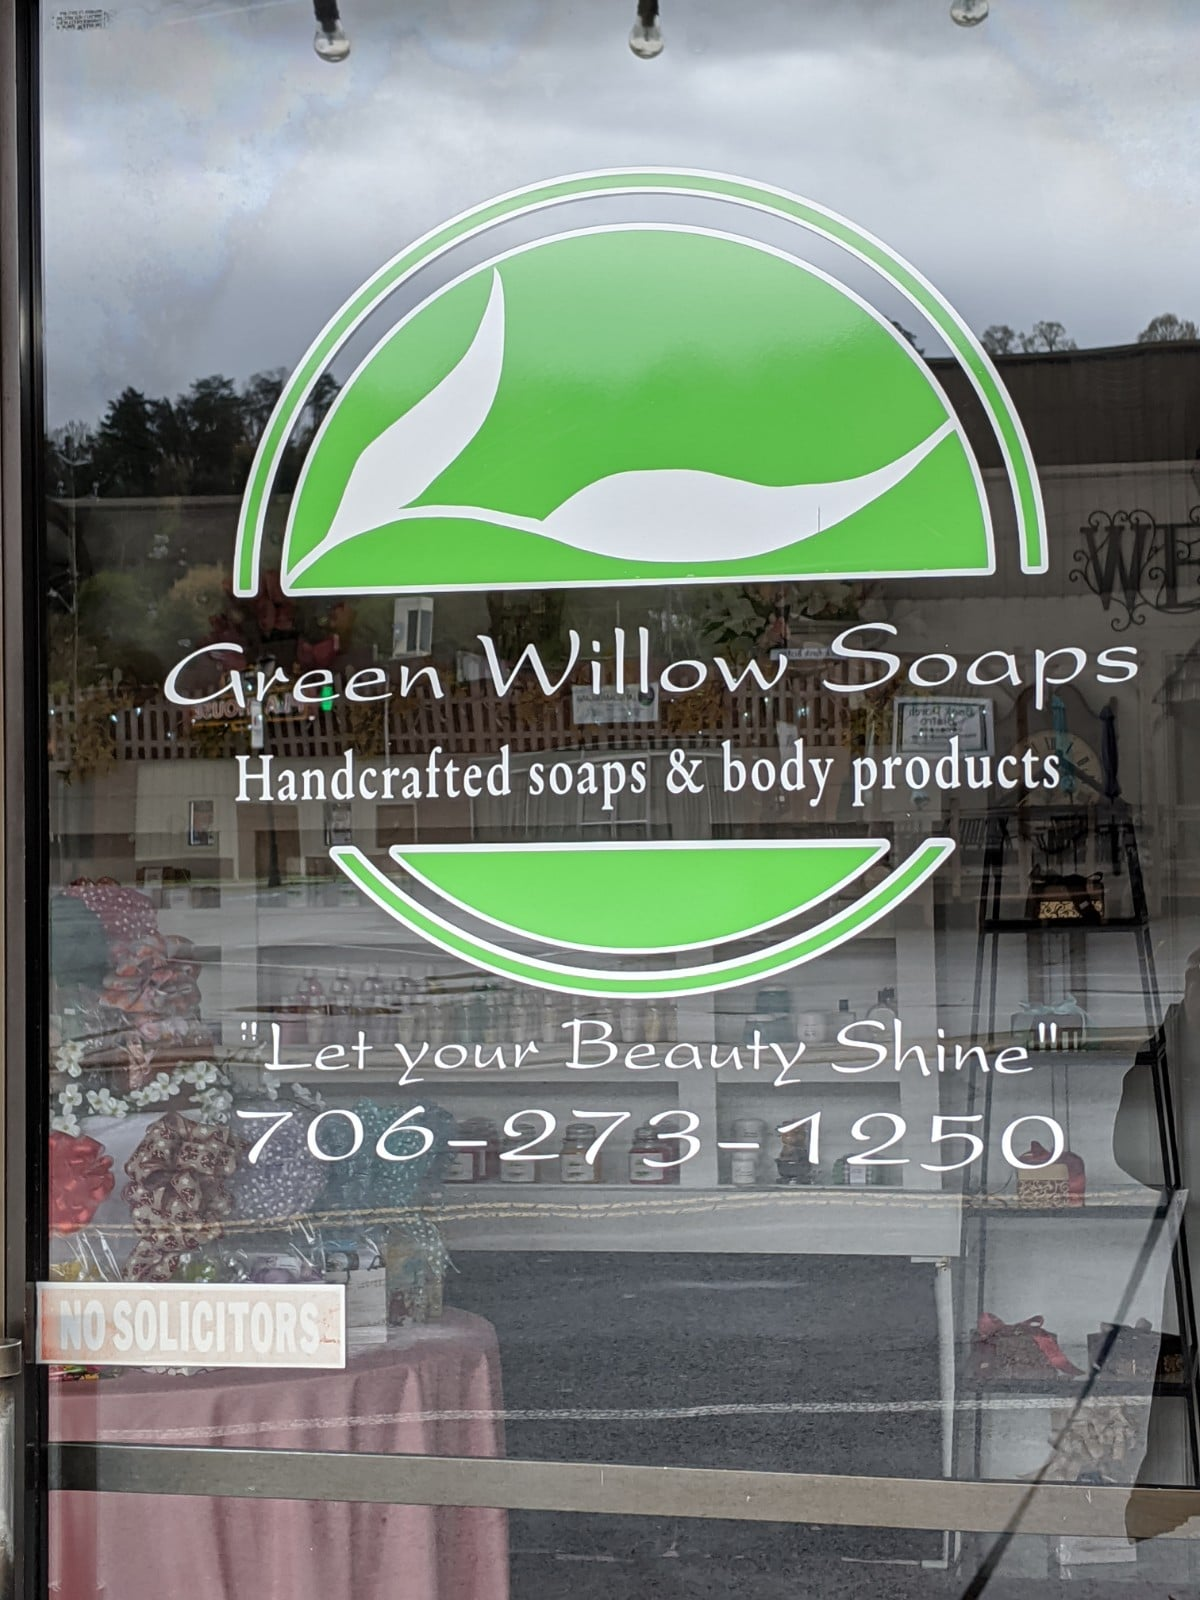 Green Willow Soaps storefront in Downtown Ellijay.